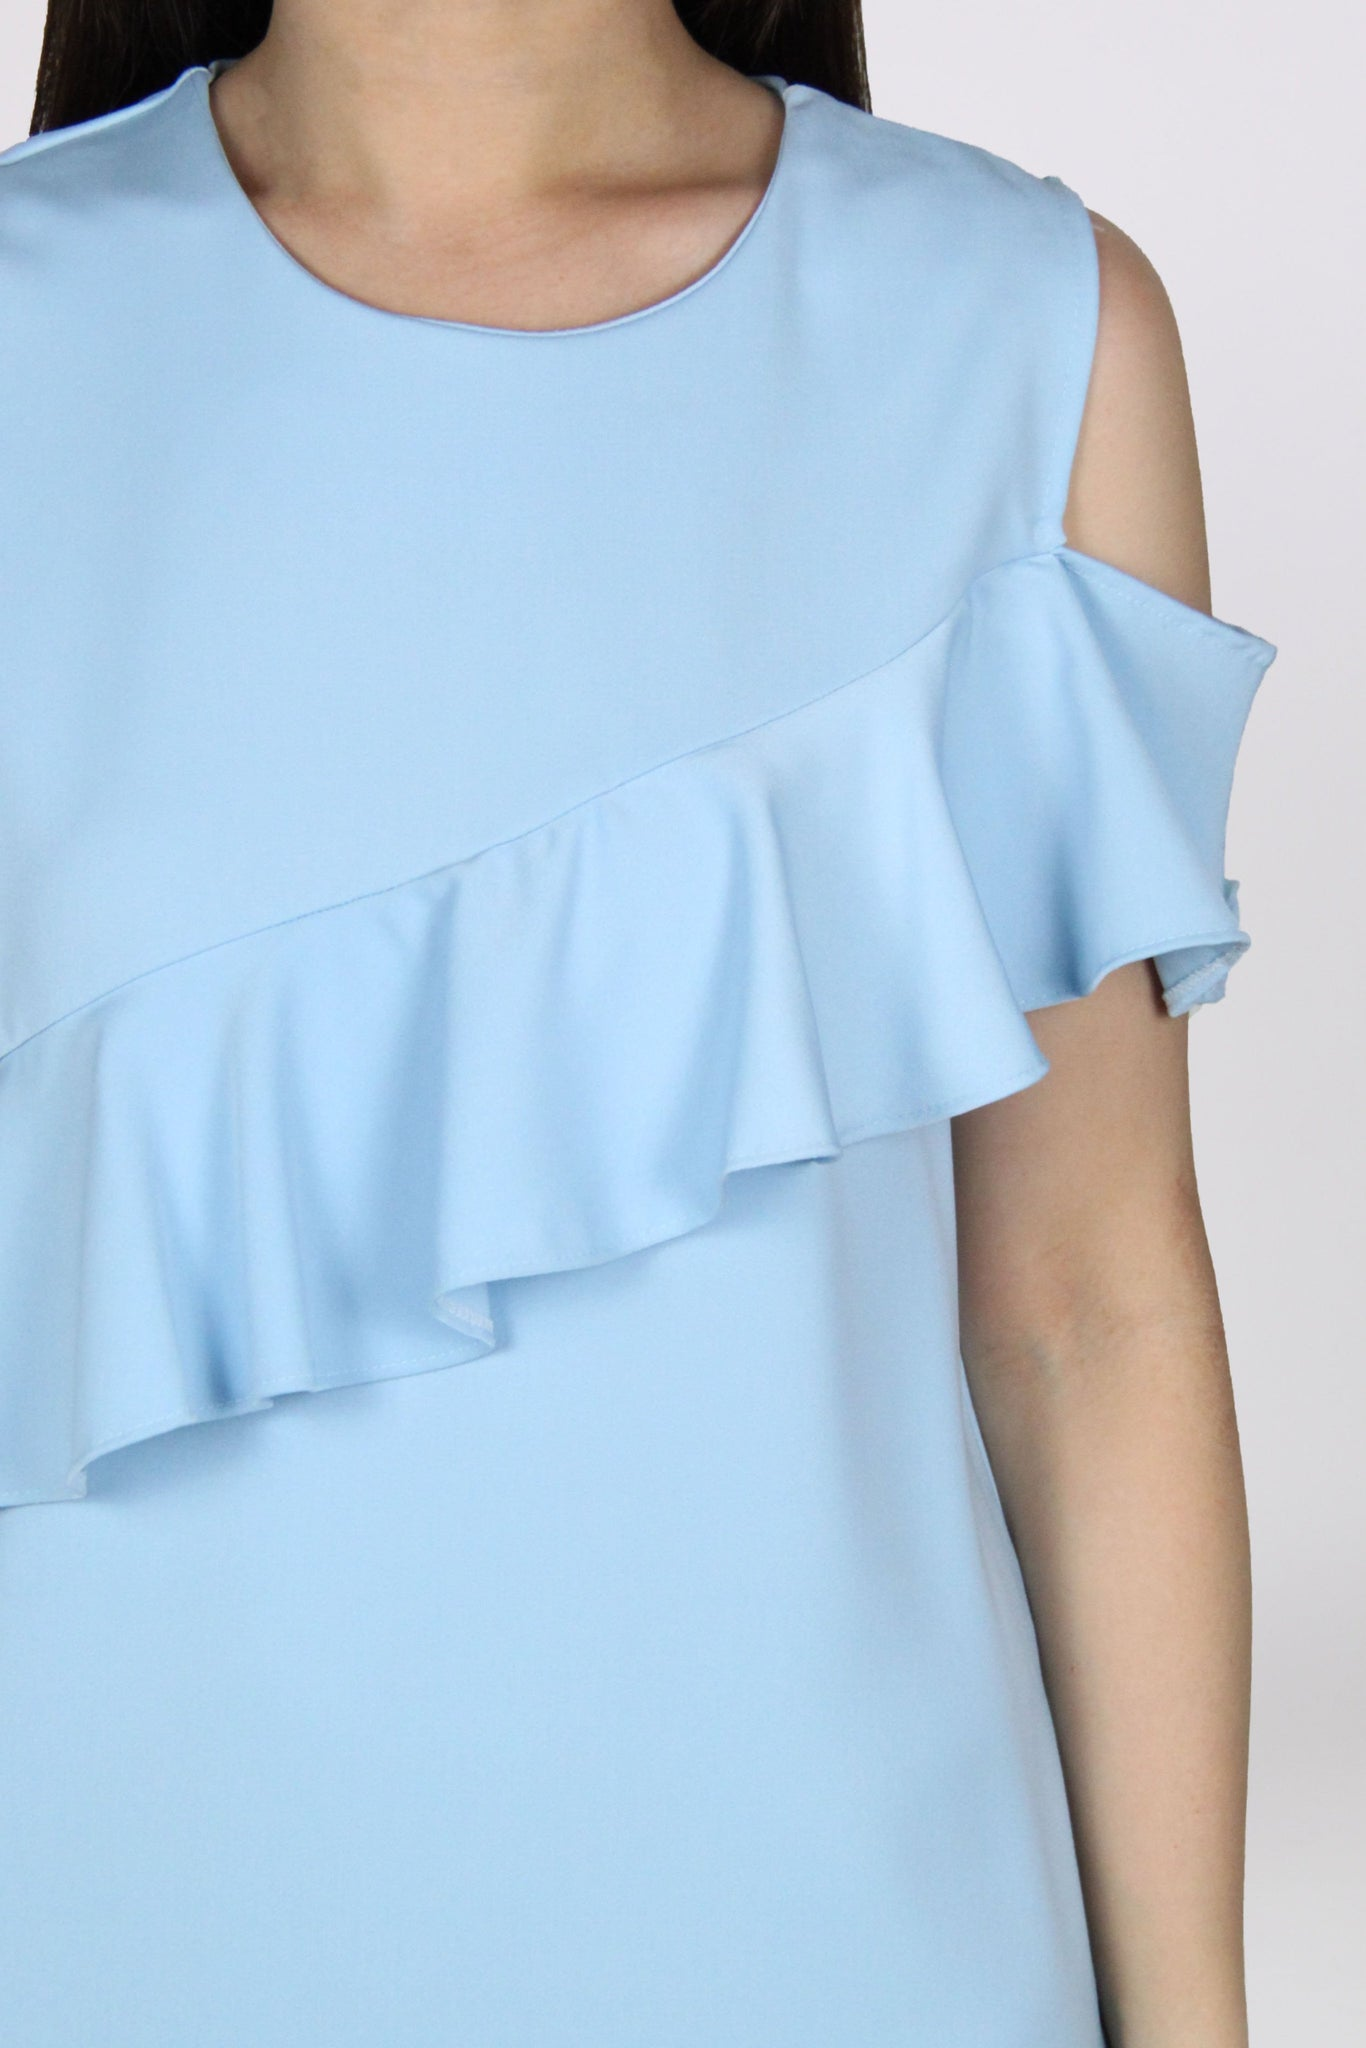 Single Cold Shoulder Ruffles Shift Dress in Light Blue